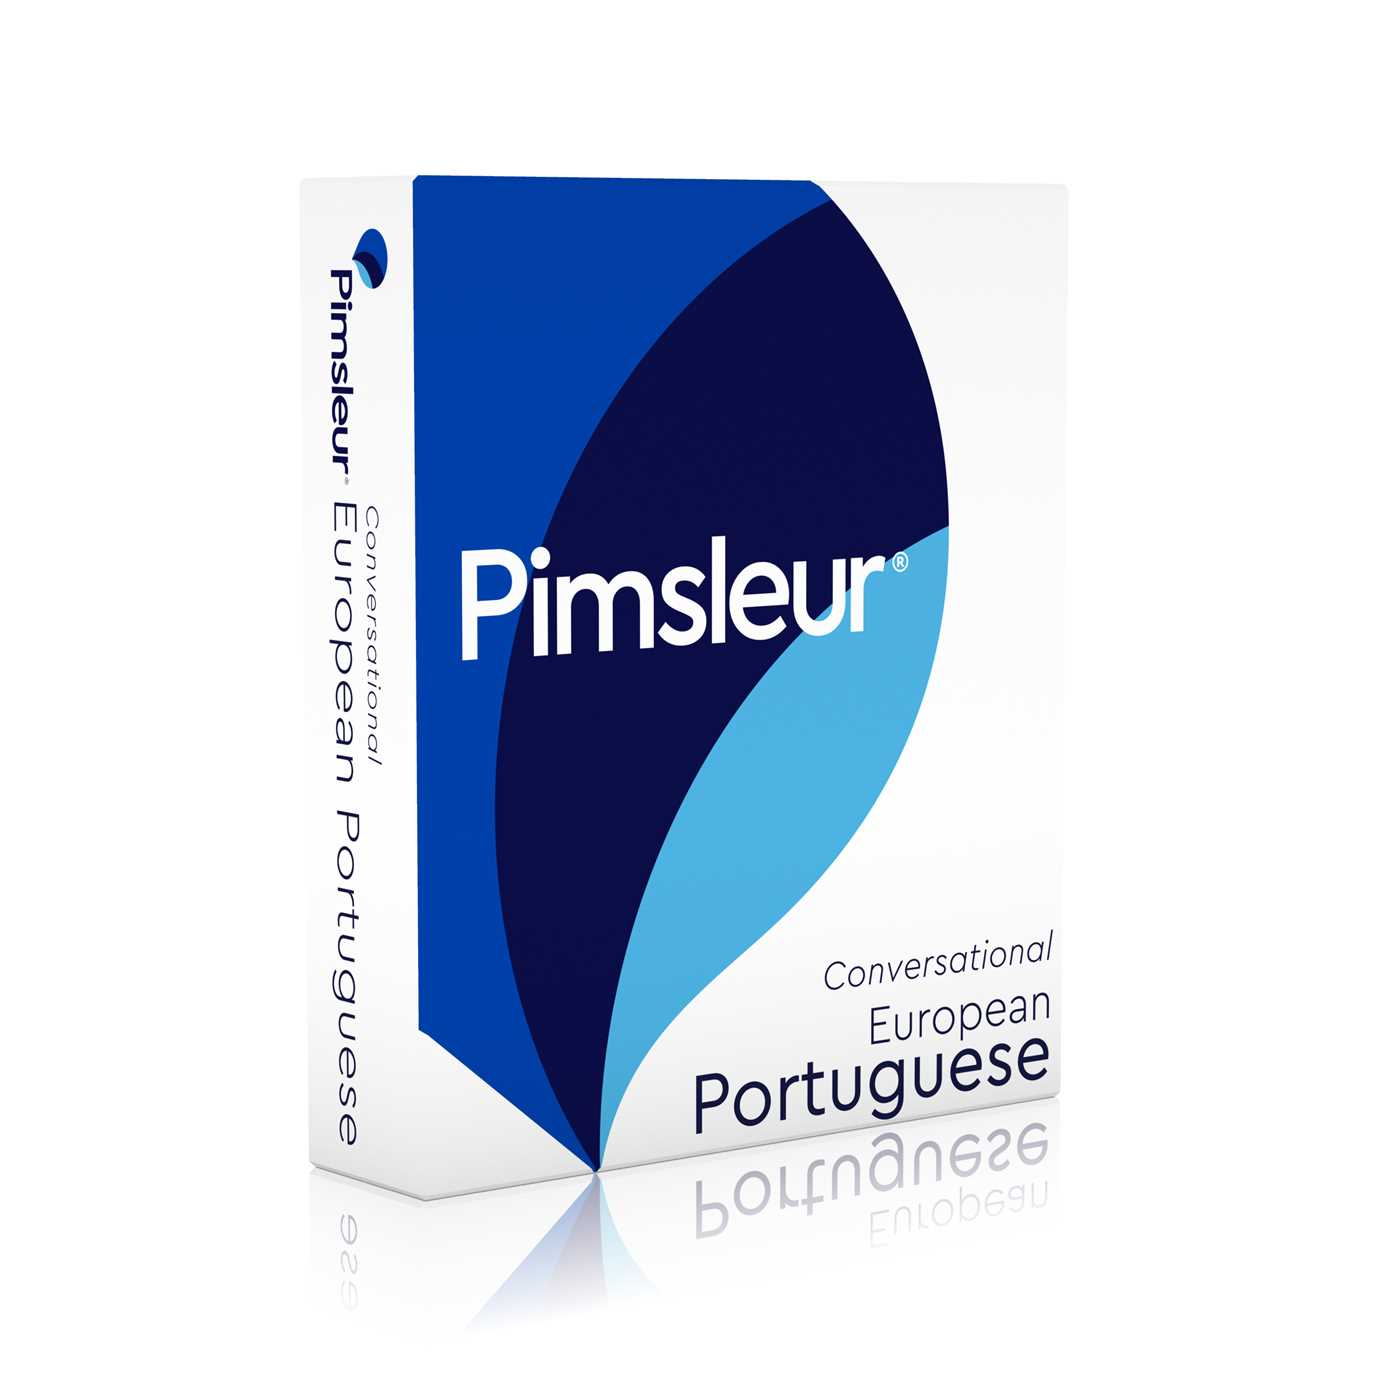 Pimsleur Portuguese (European) Conversational Course - Level 1 Lessons 1-16 CD : Learn to Speak and Understand European Portuguese with Pimsleur Language Programs